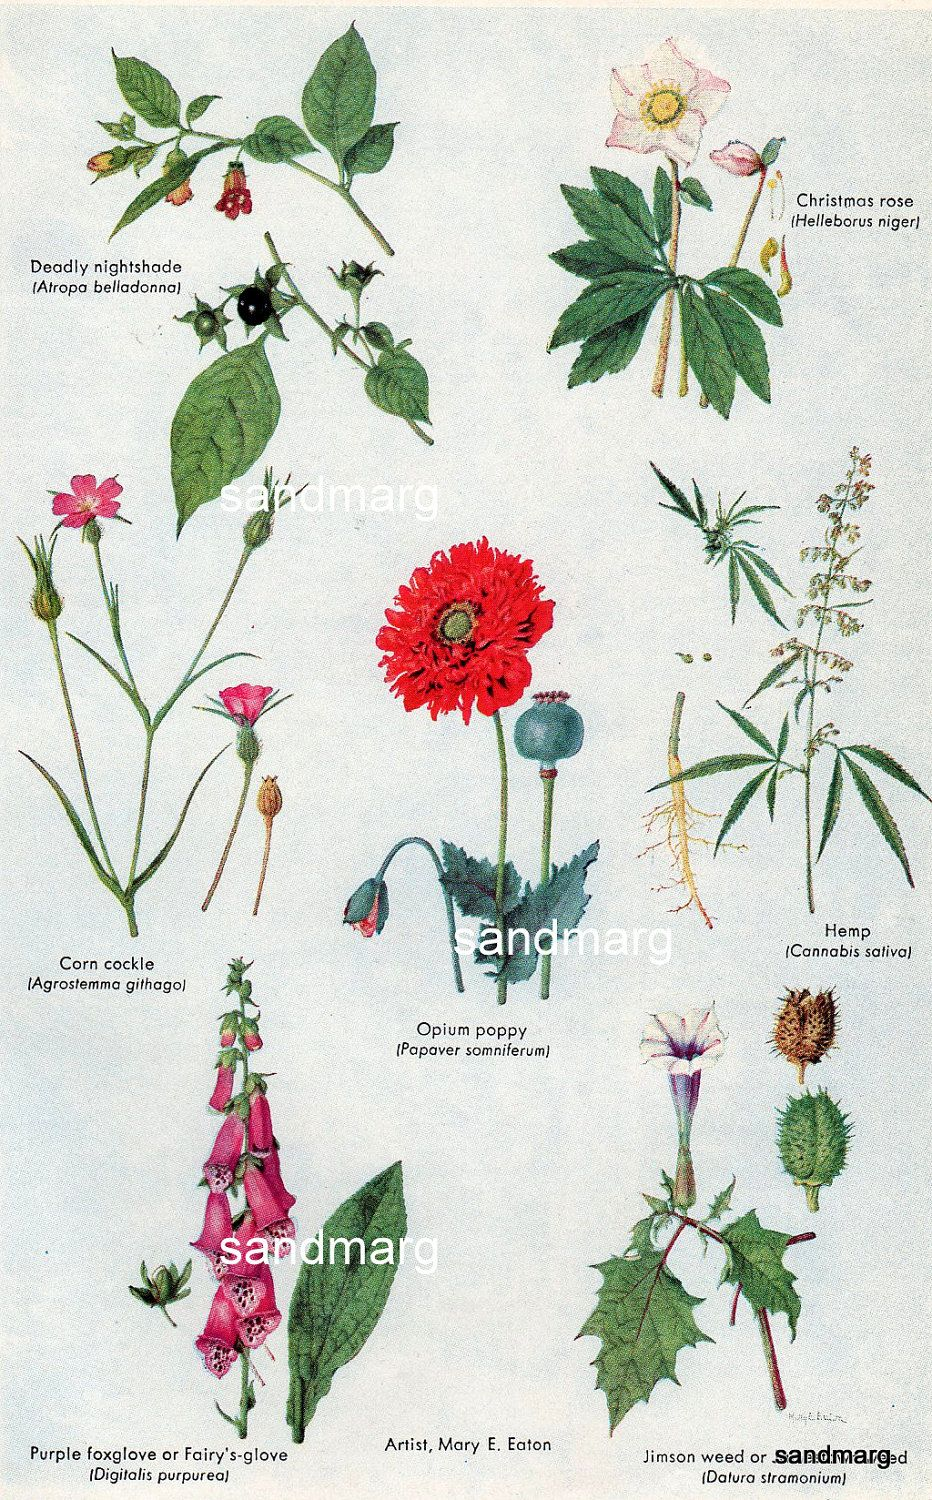 The spice doc edible and medicinal flowers - 1927 Opium Poppy And Other Medicinal Plants Edible Plants